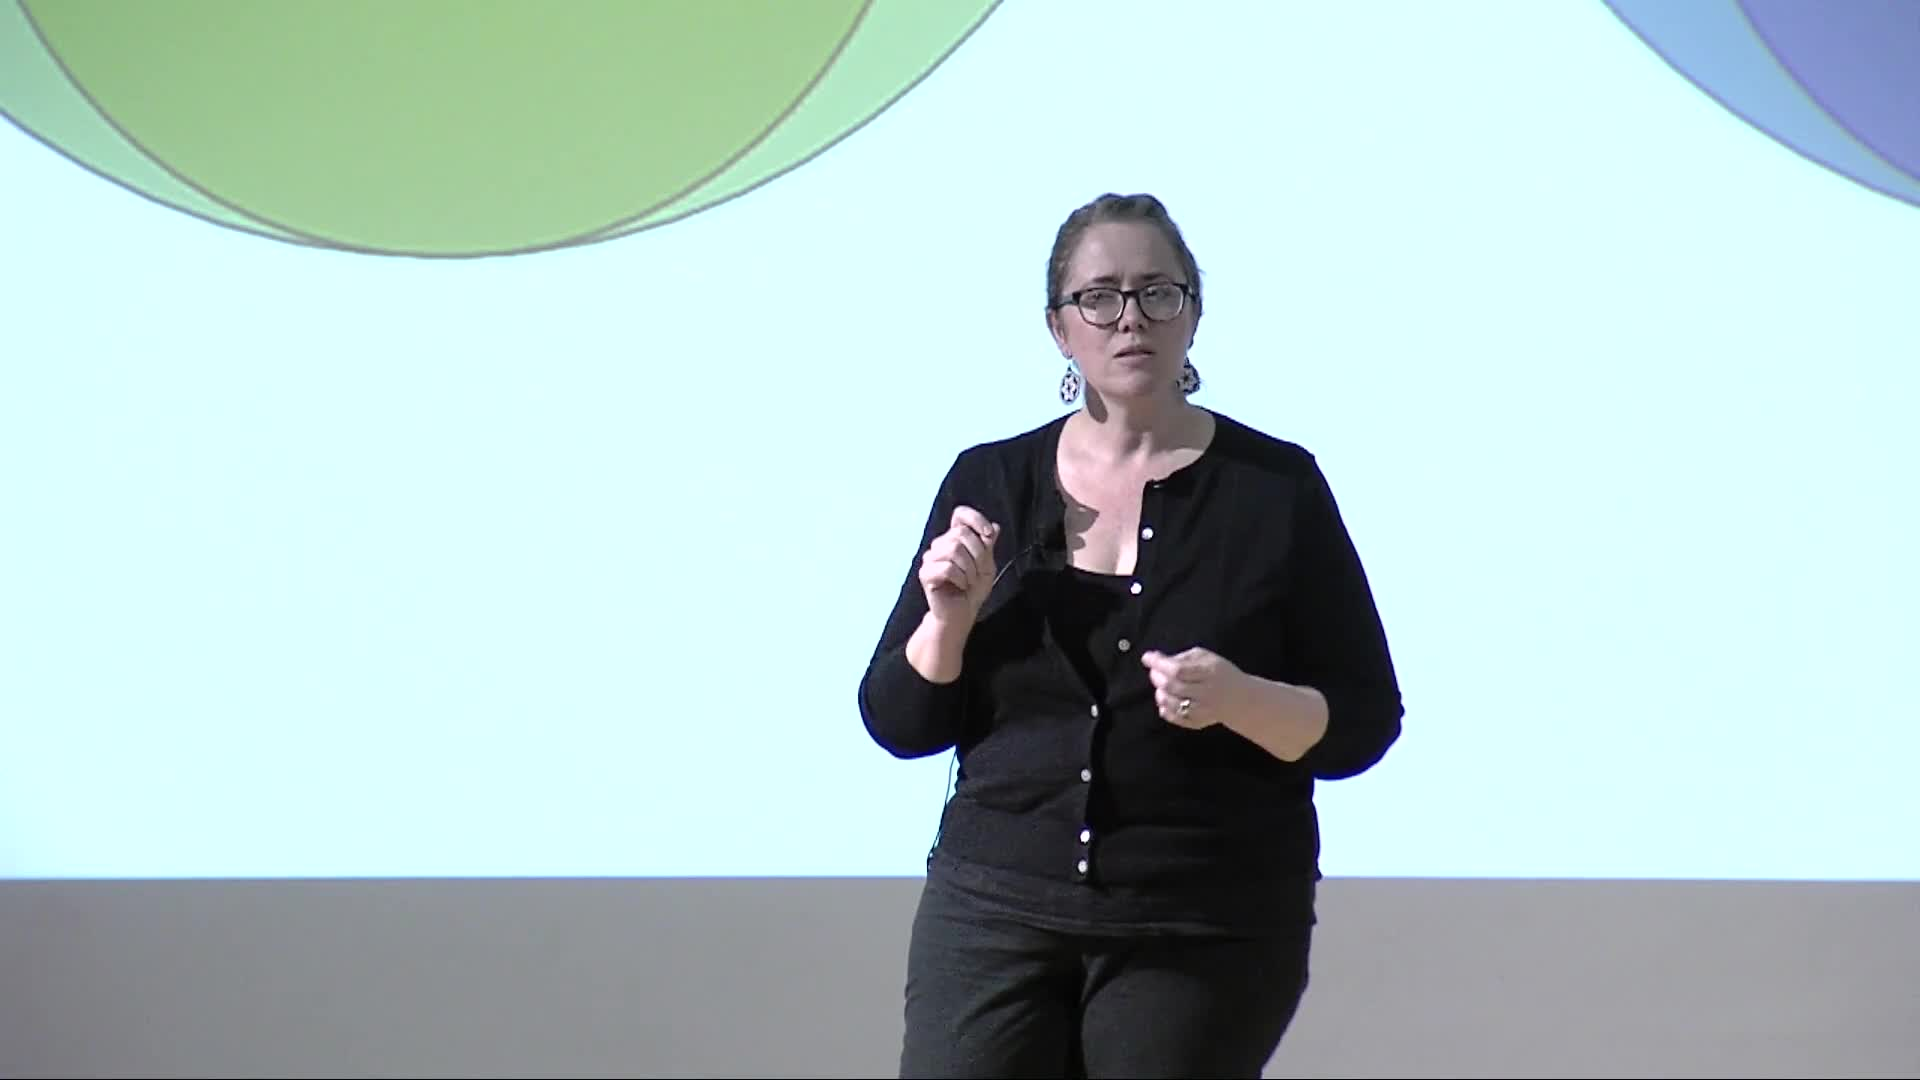 Florida Atlantic University 2018 3MT® Three Minute Thesis Championship - Kate Briner